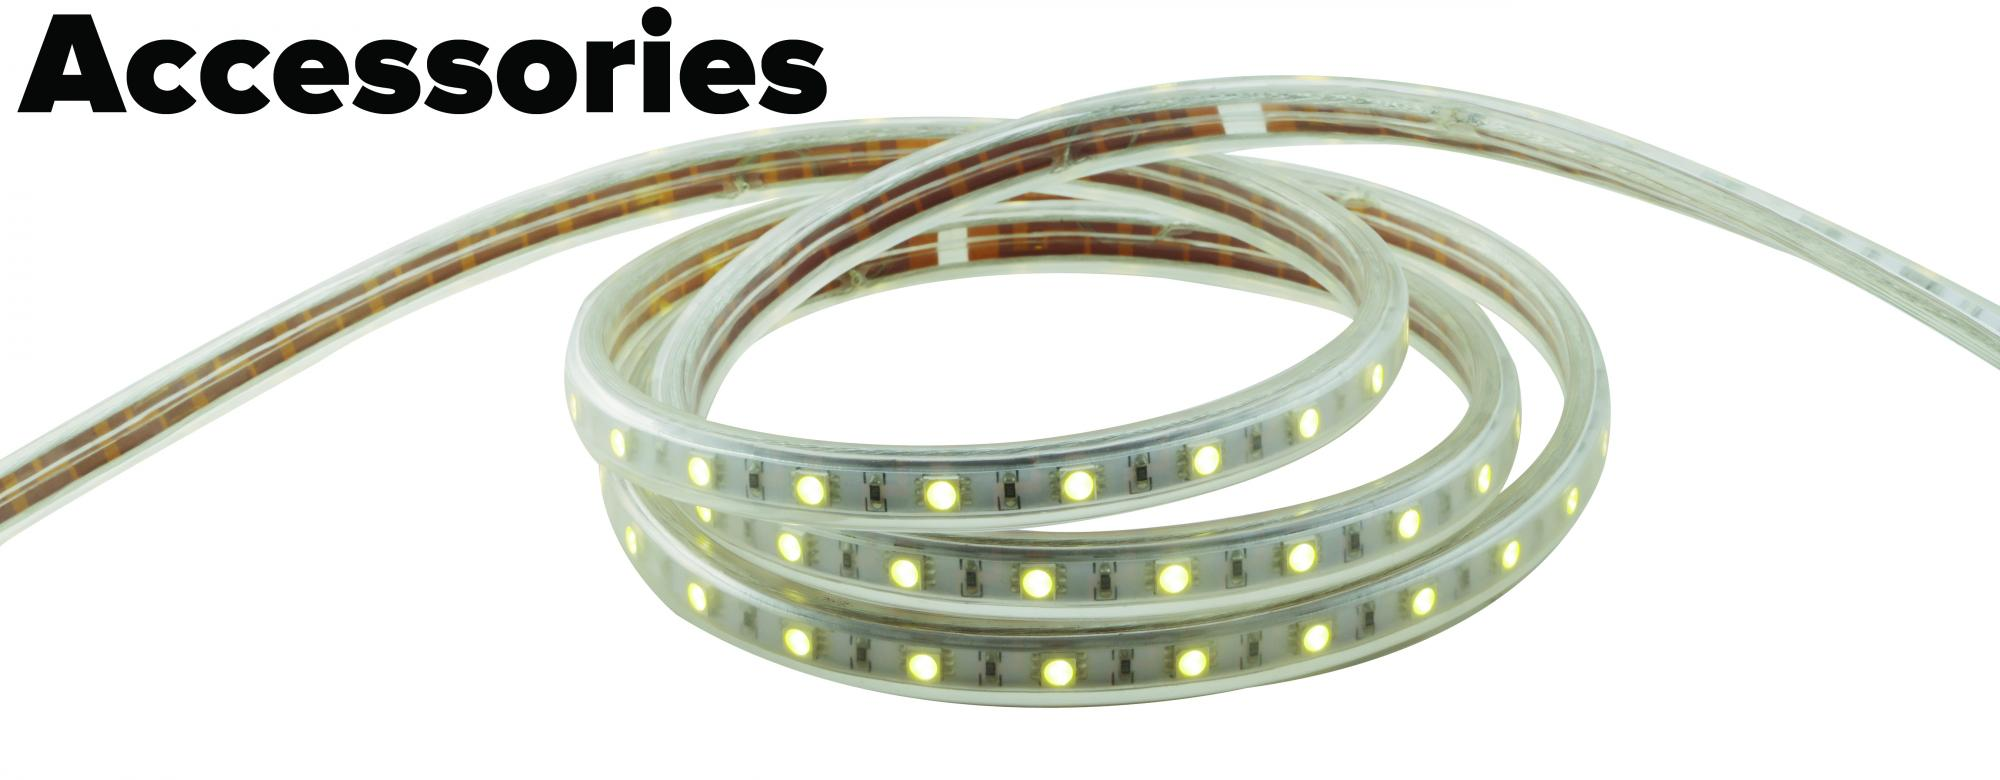 Led flat rope light accessories elco lighting led flat rope light accessories mozeypictures Images